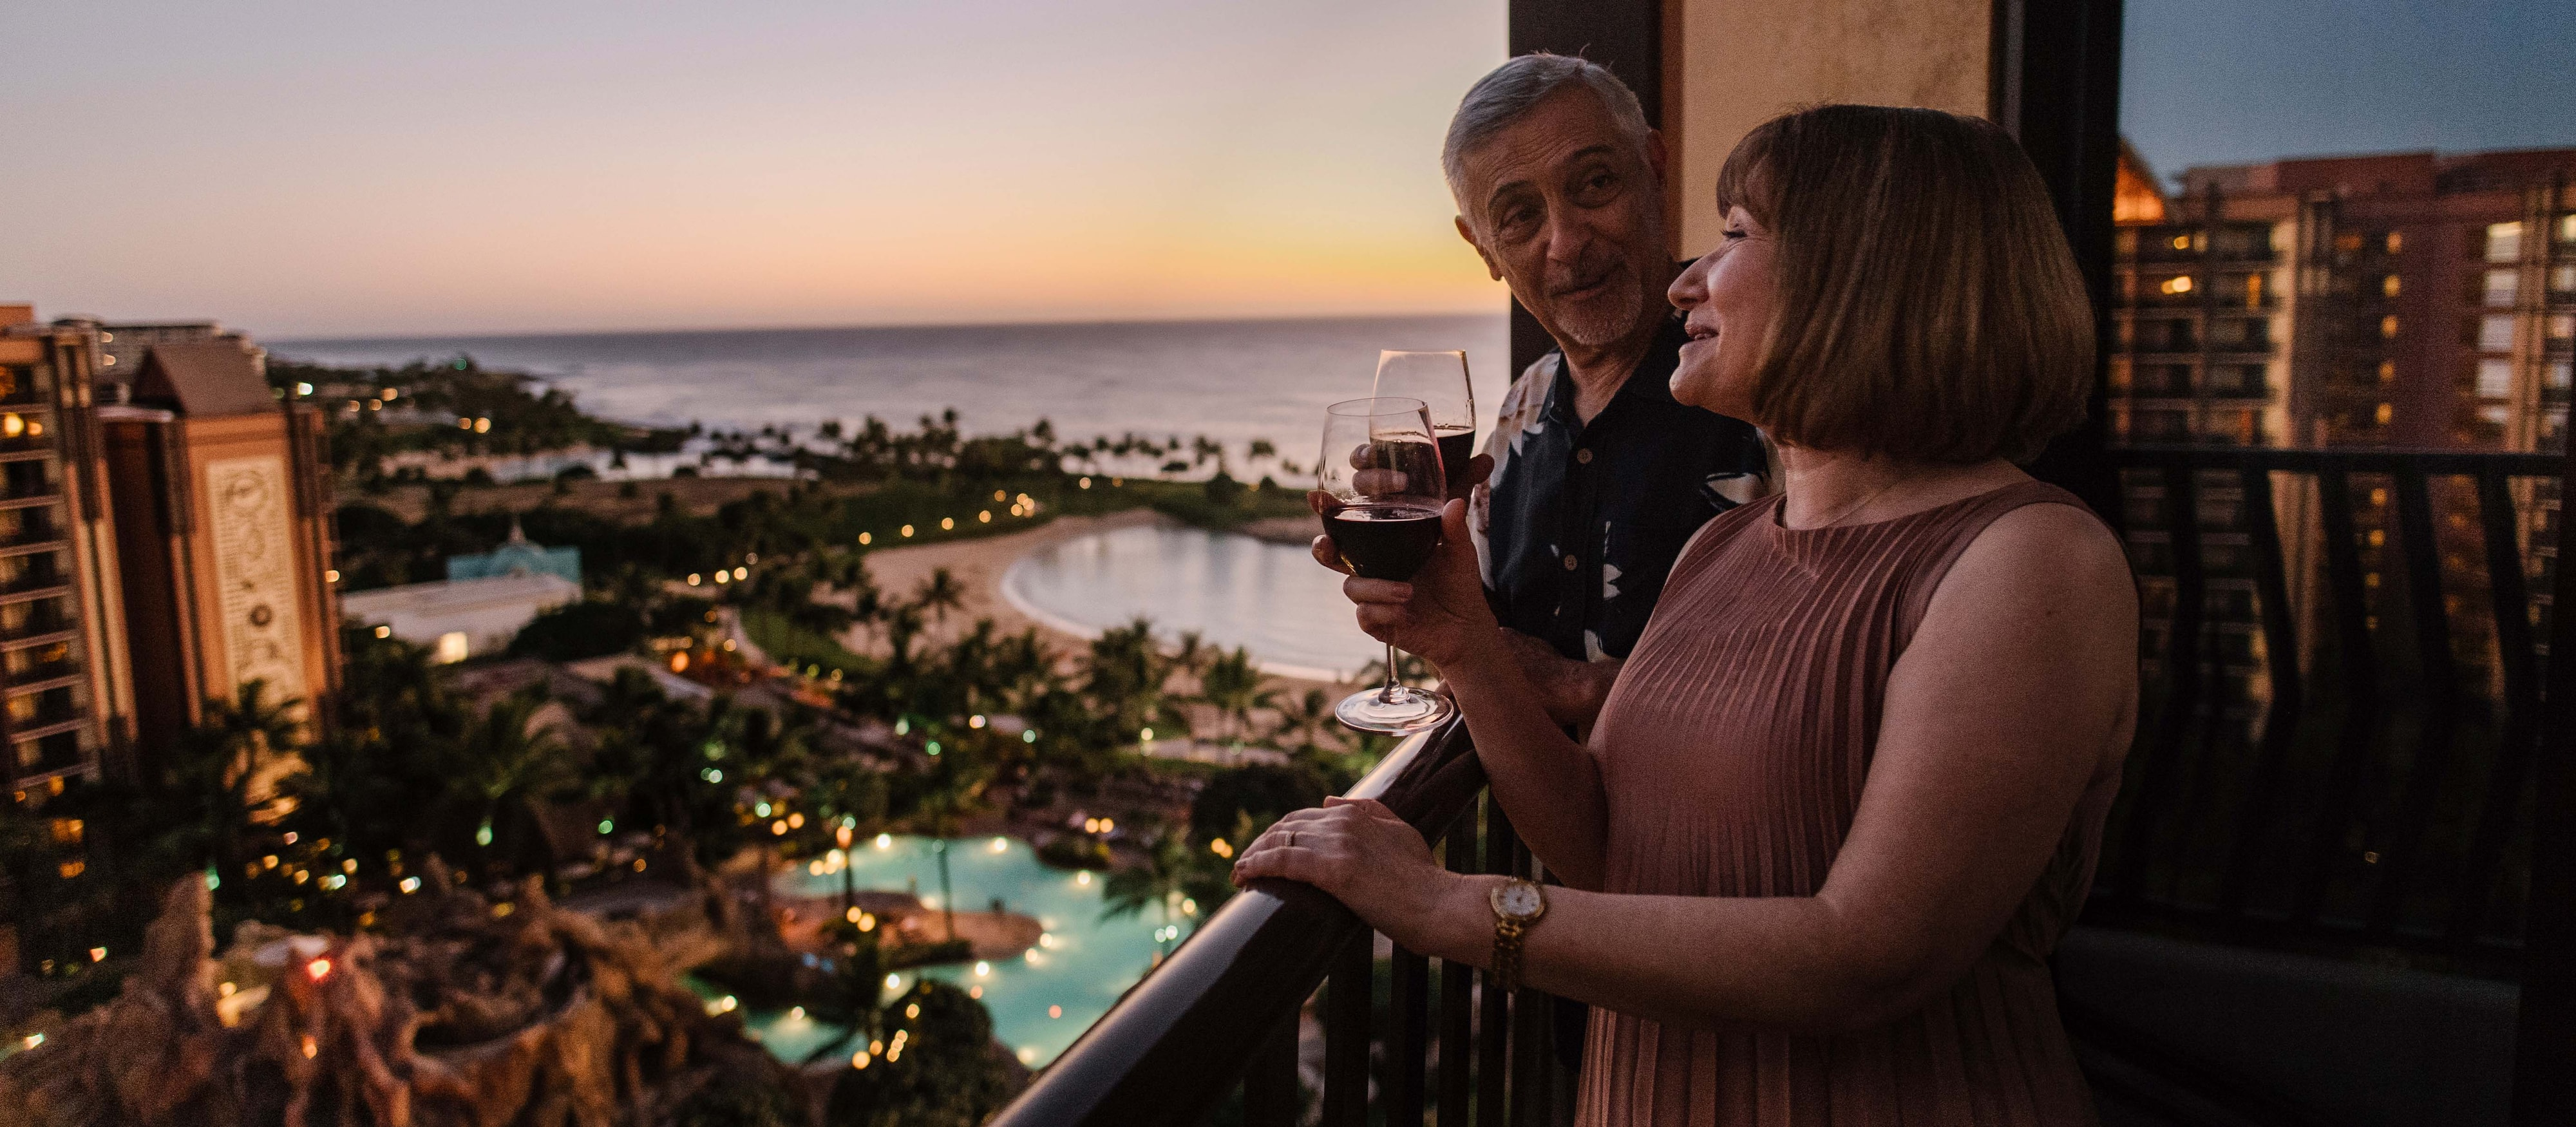 A mature couple drinks wine on a balcony overlooking pools and the ocean at Aulani Resort